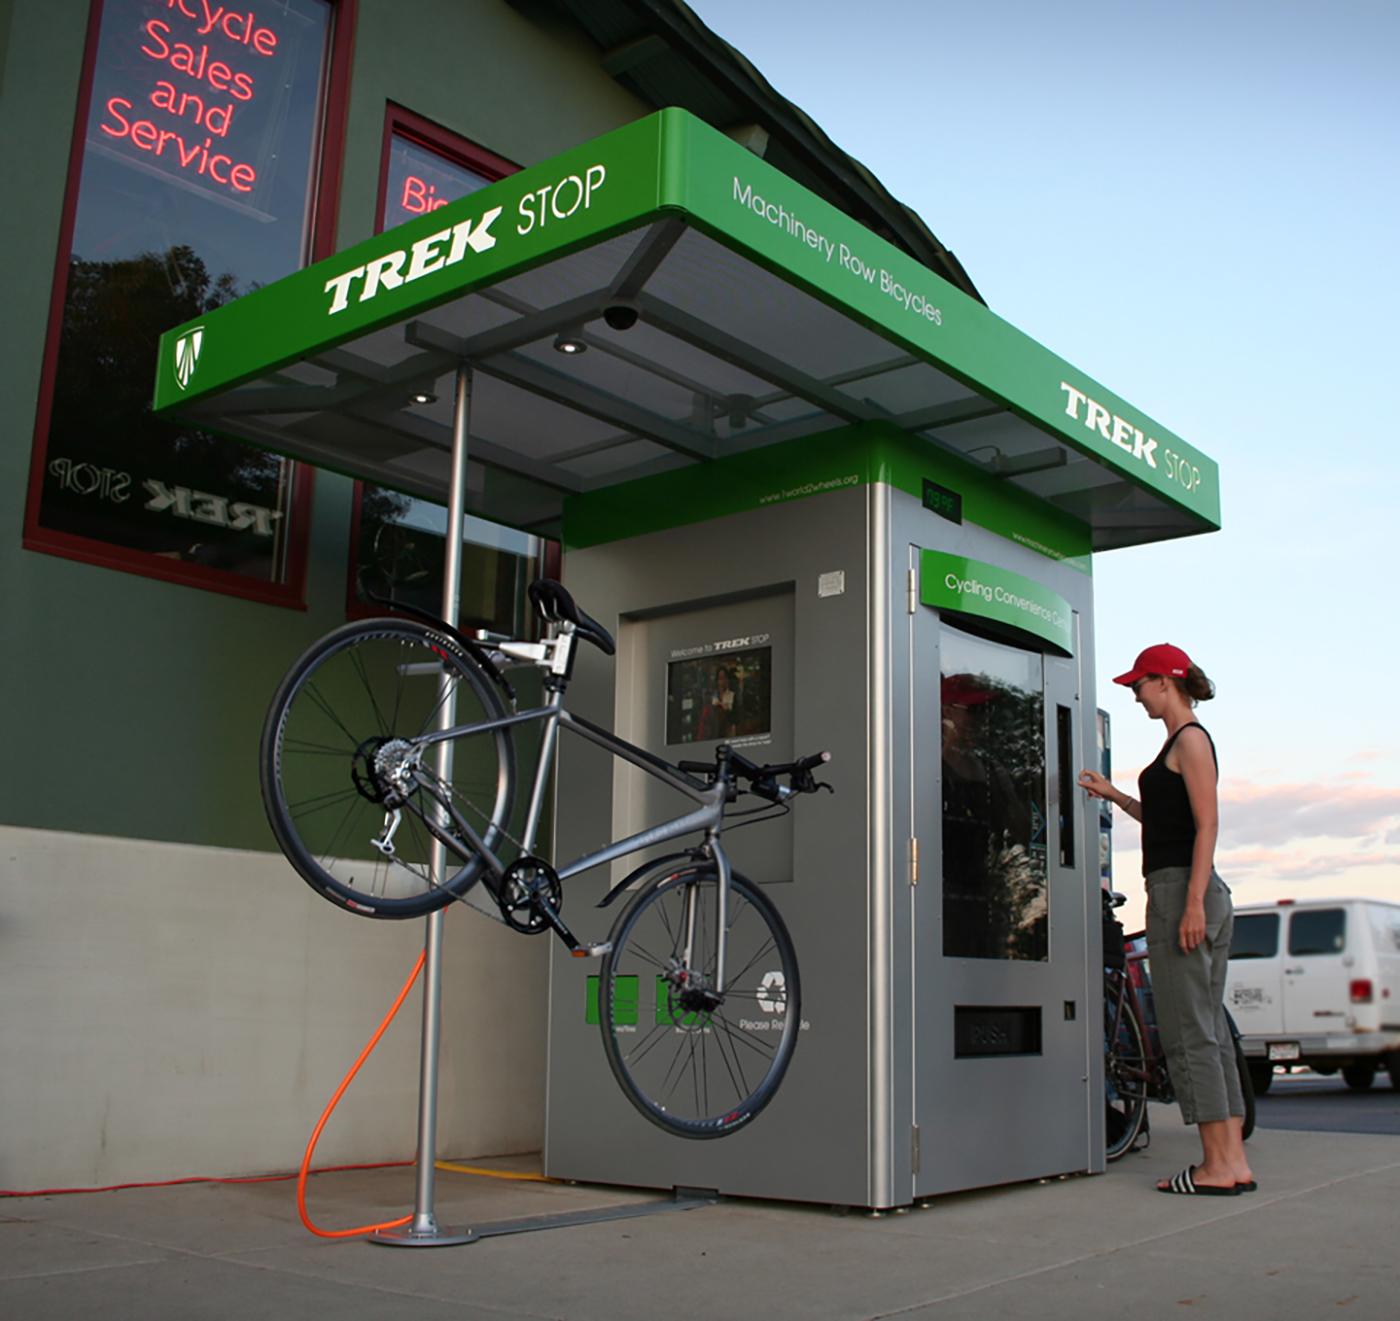 Trek Stop: Cycling Convenience Center (Prototype)